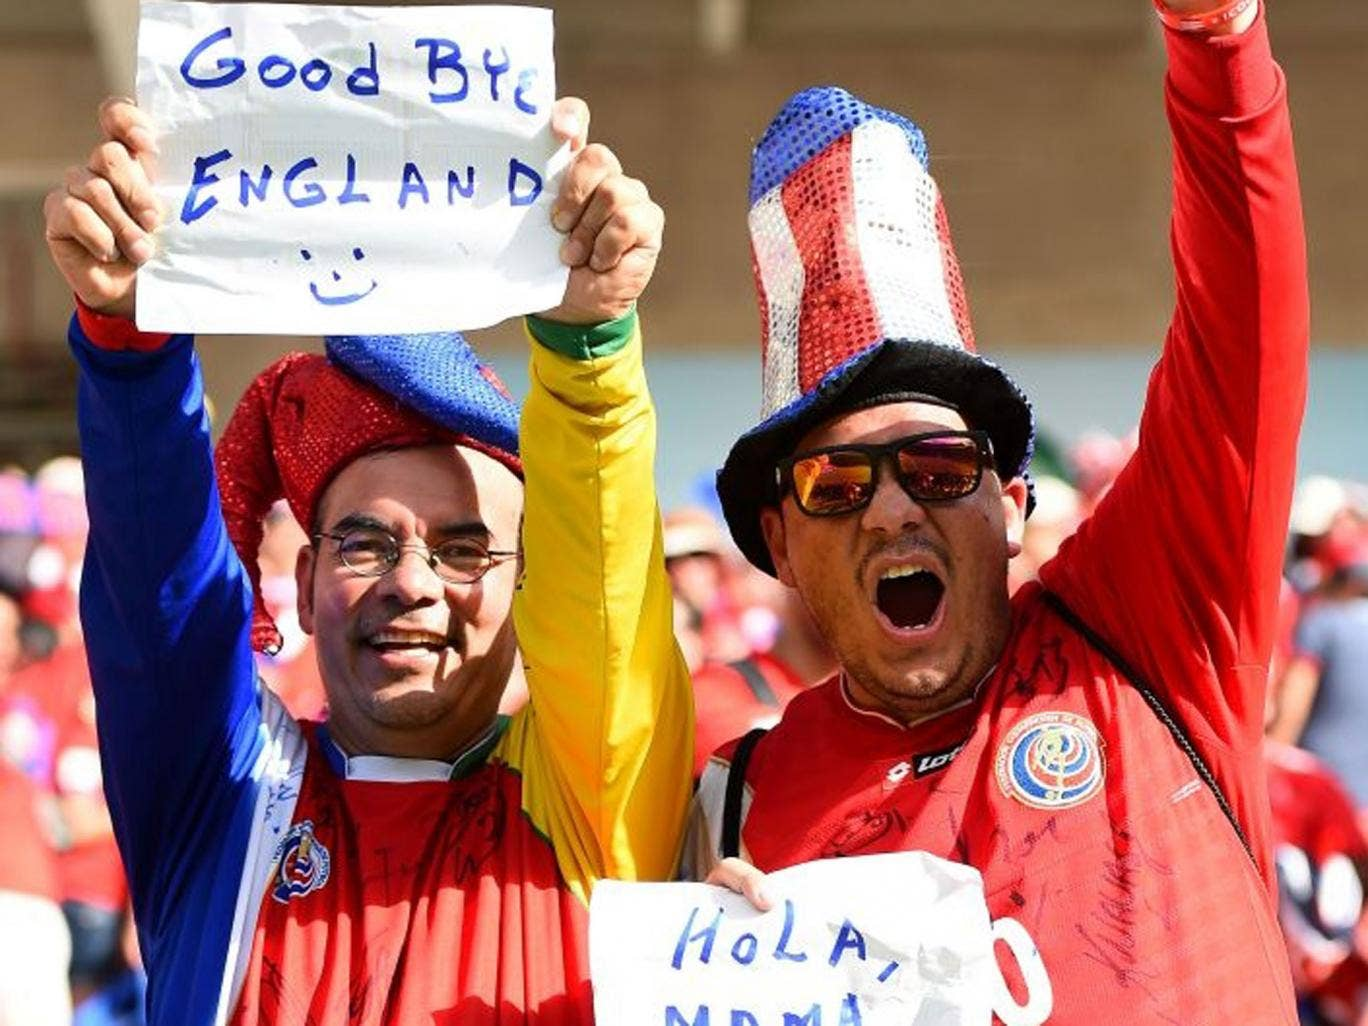 """A Costa Rica fan holds up a sign reading """"Good Bye England"""" during the 2014 FIFA World Cup Brazil Group D match between Italy and Costa Rica at Arena Pernambuco on June 20, 2014 in Recife, Brazil."""